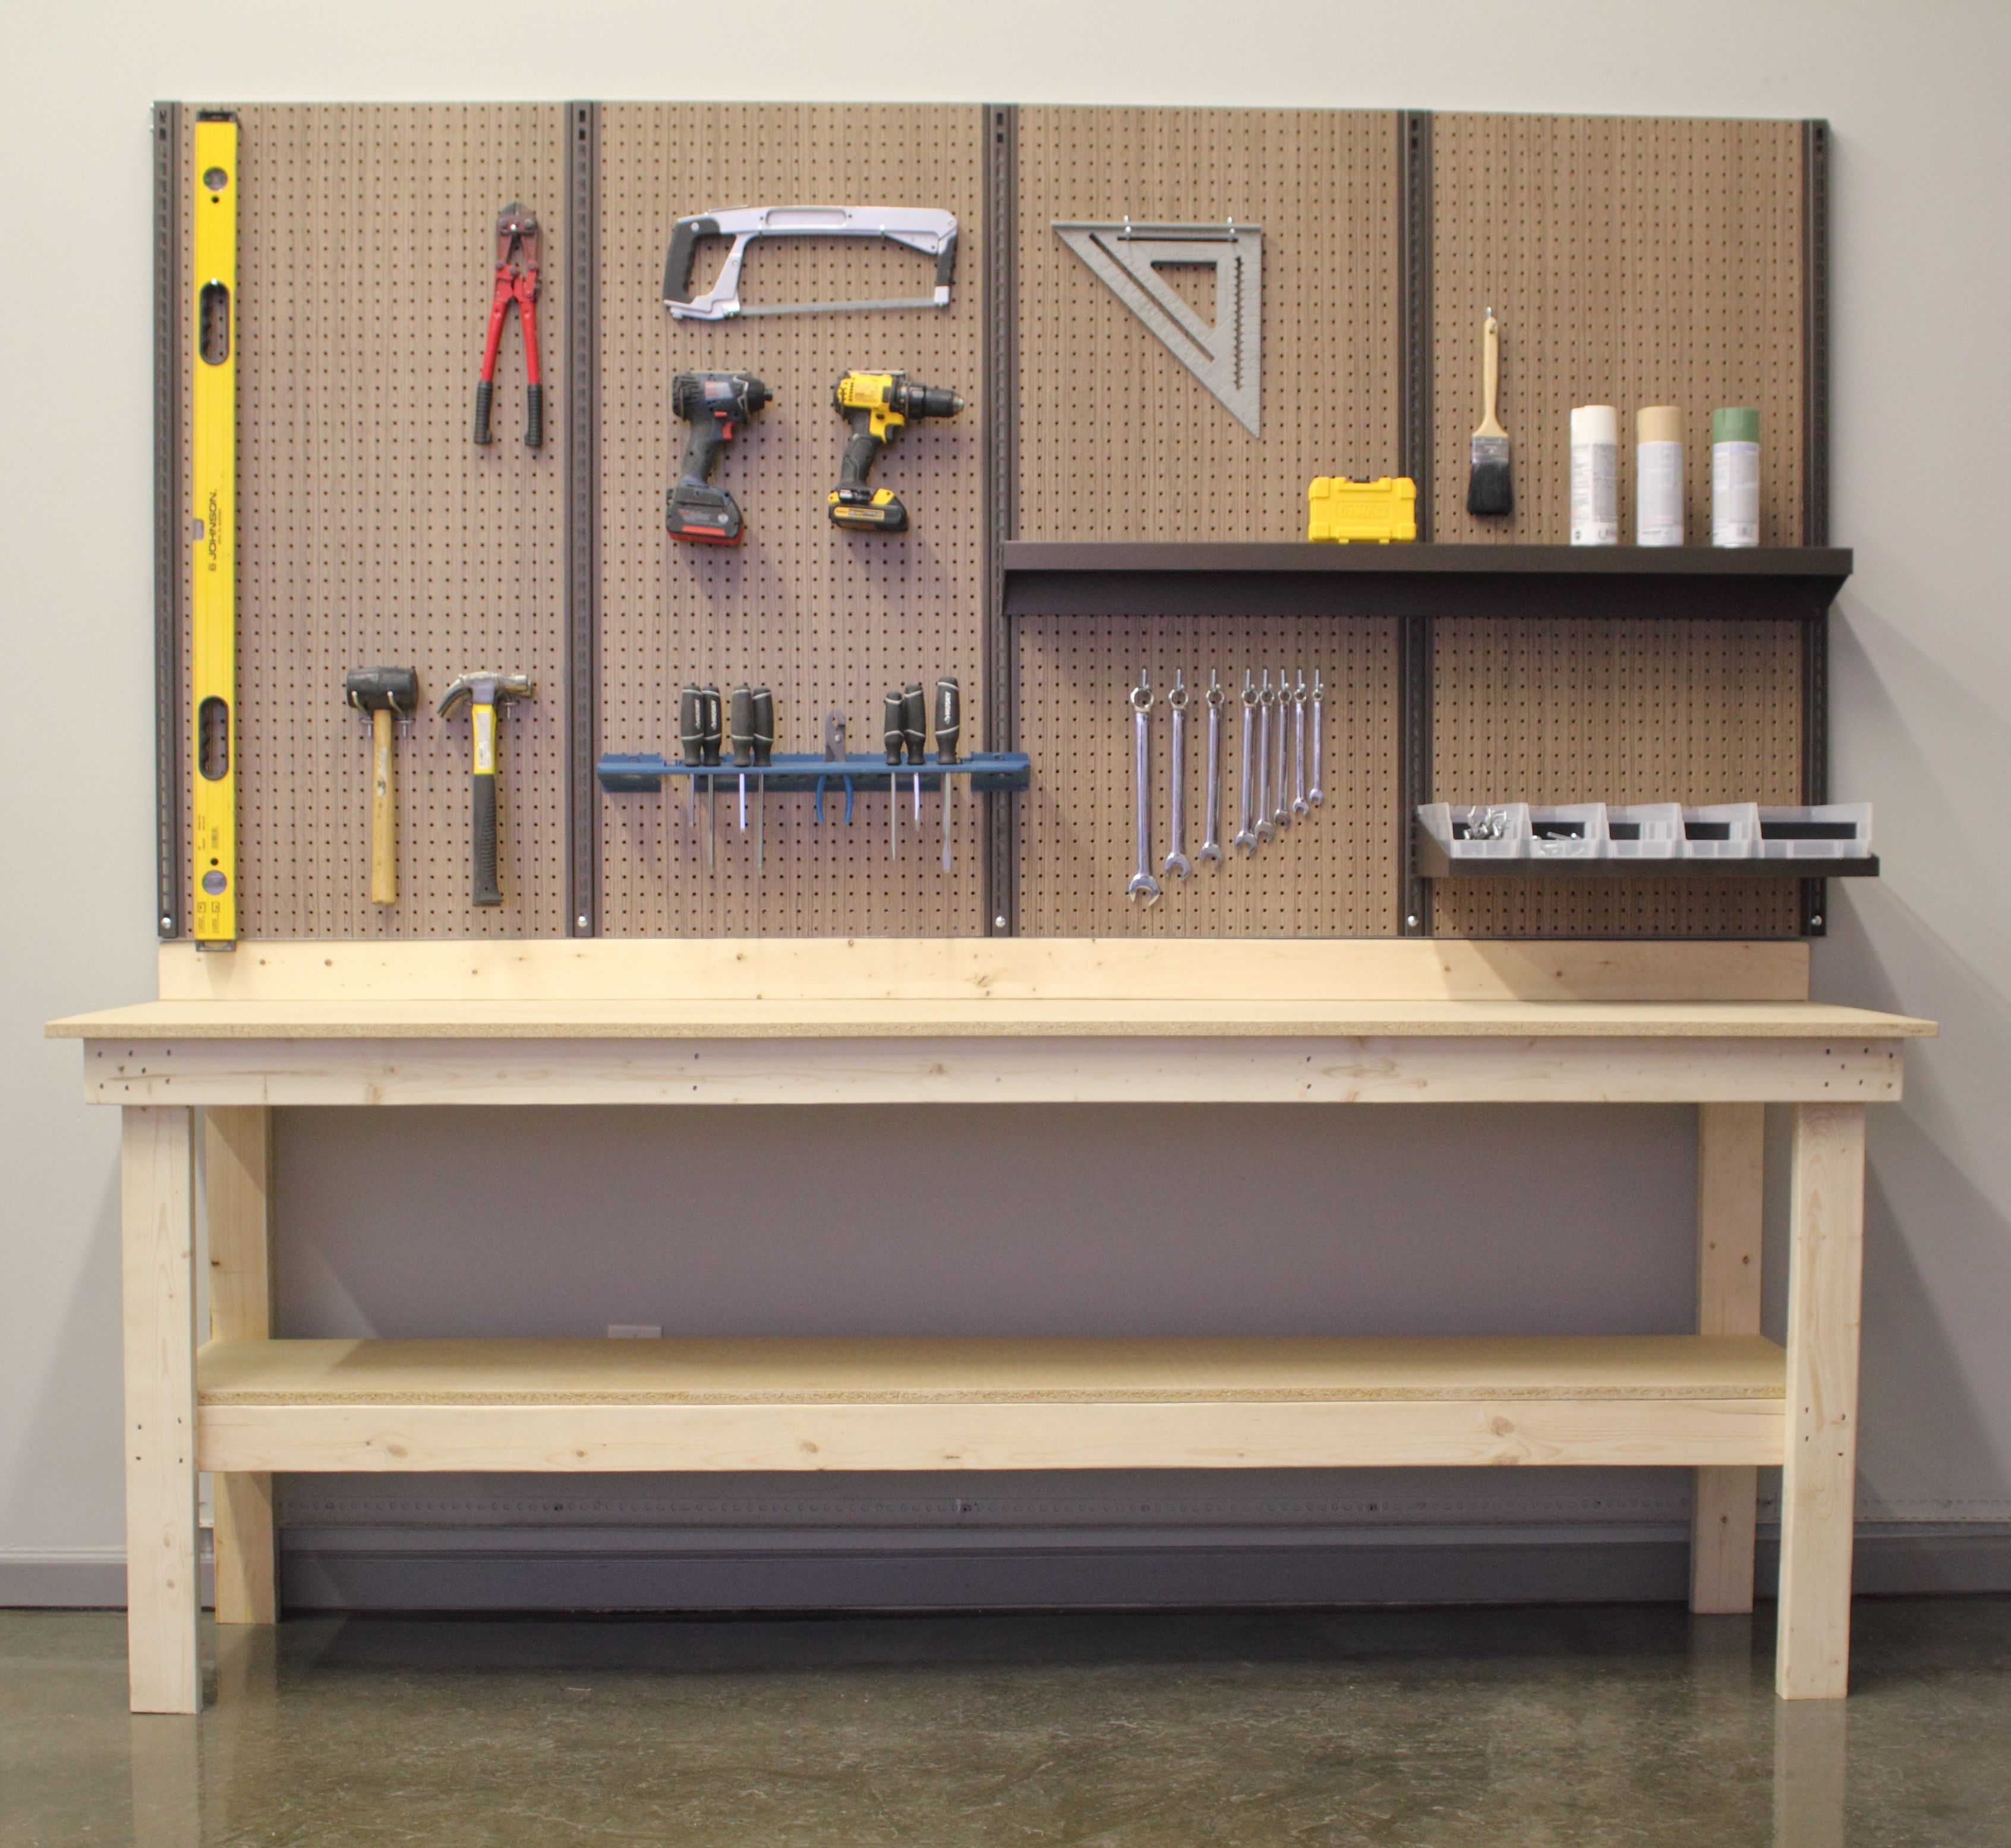 Pin by ShoreWall Systems on ShoreWall Kits | Woodworking ...